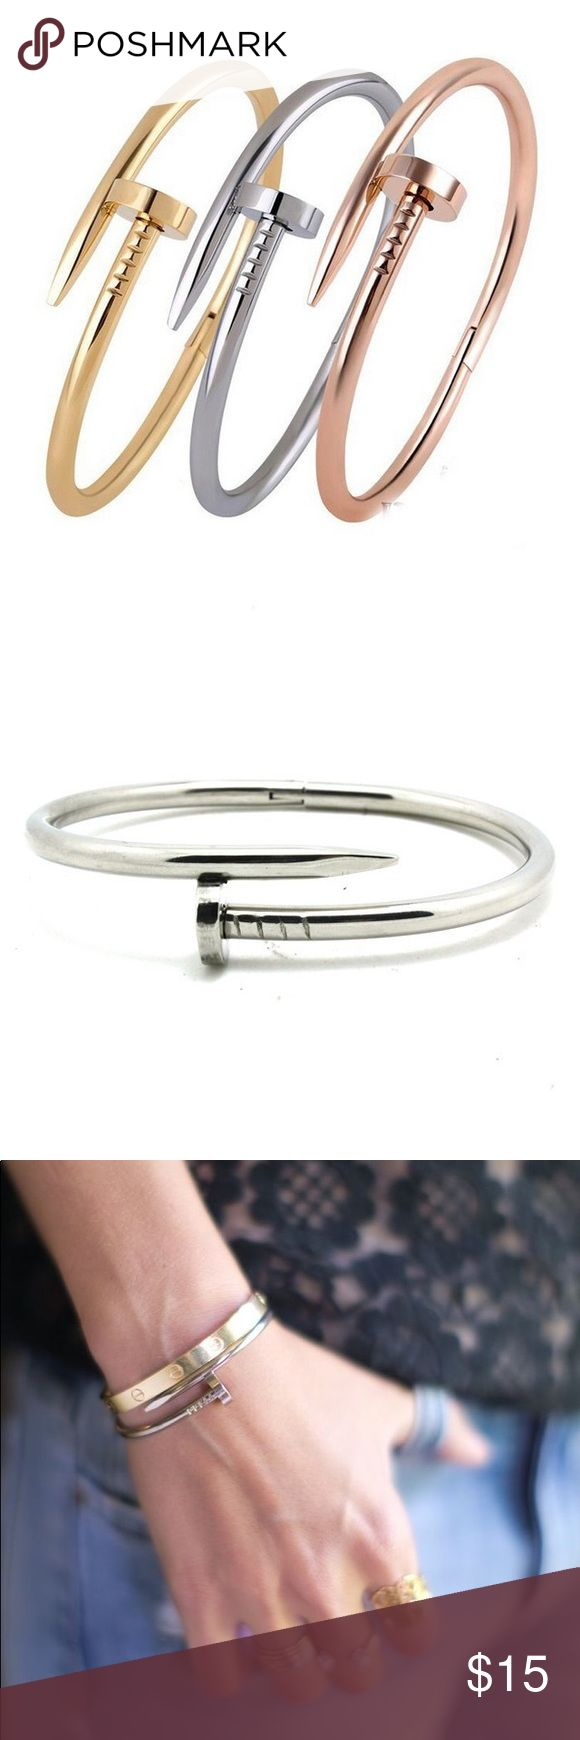 Stainless Nail Head Bracelet Stainless steel nail head bracelet in silver tone; new without tags; never worn. Pop the head open to place on your wrist and squeeze closed. Looks awesome stacked with other jewelry or simple and chic on its own. Jewelry Bracelets